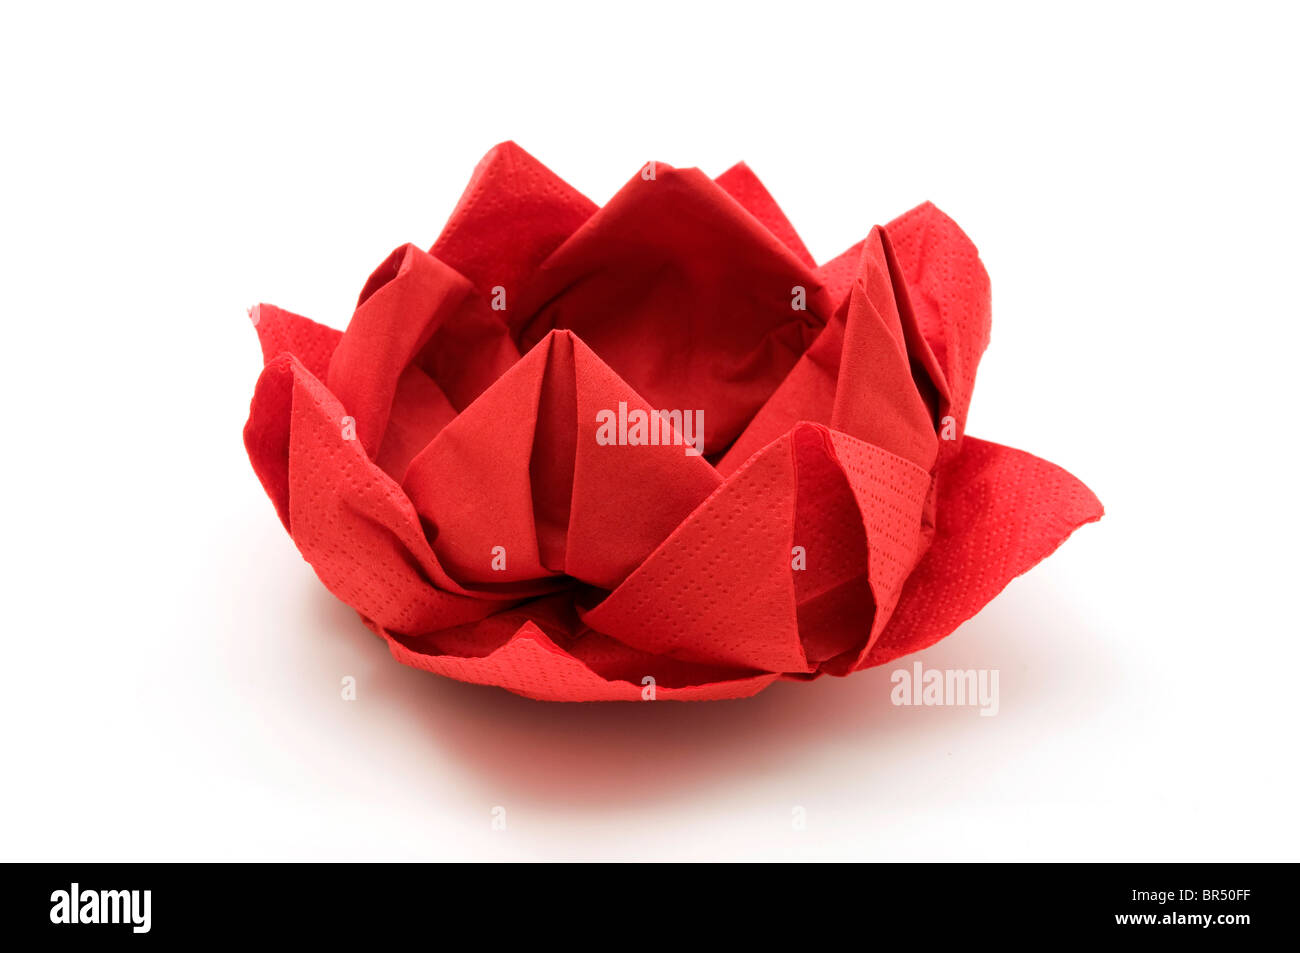 Red lotus origami on a white background - Stock Image